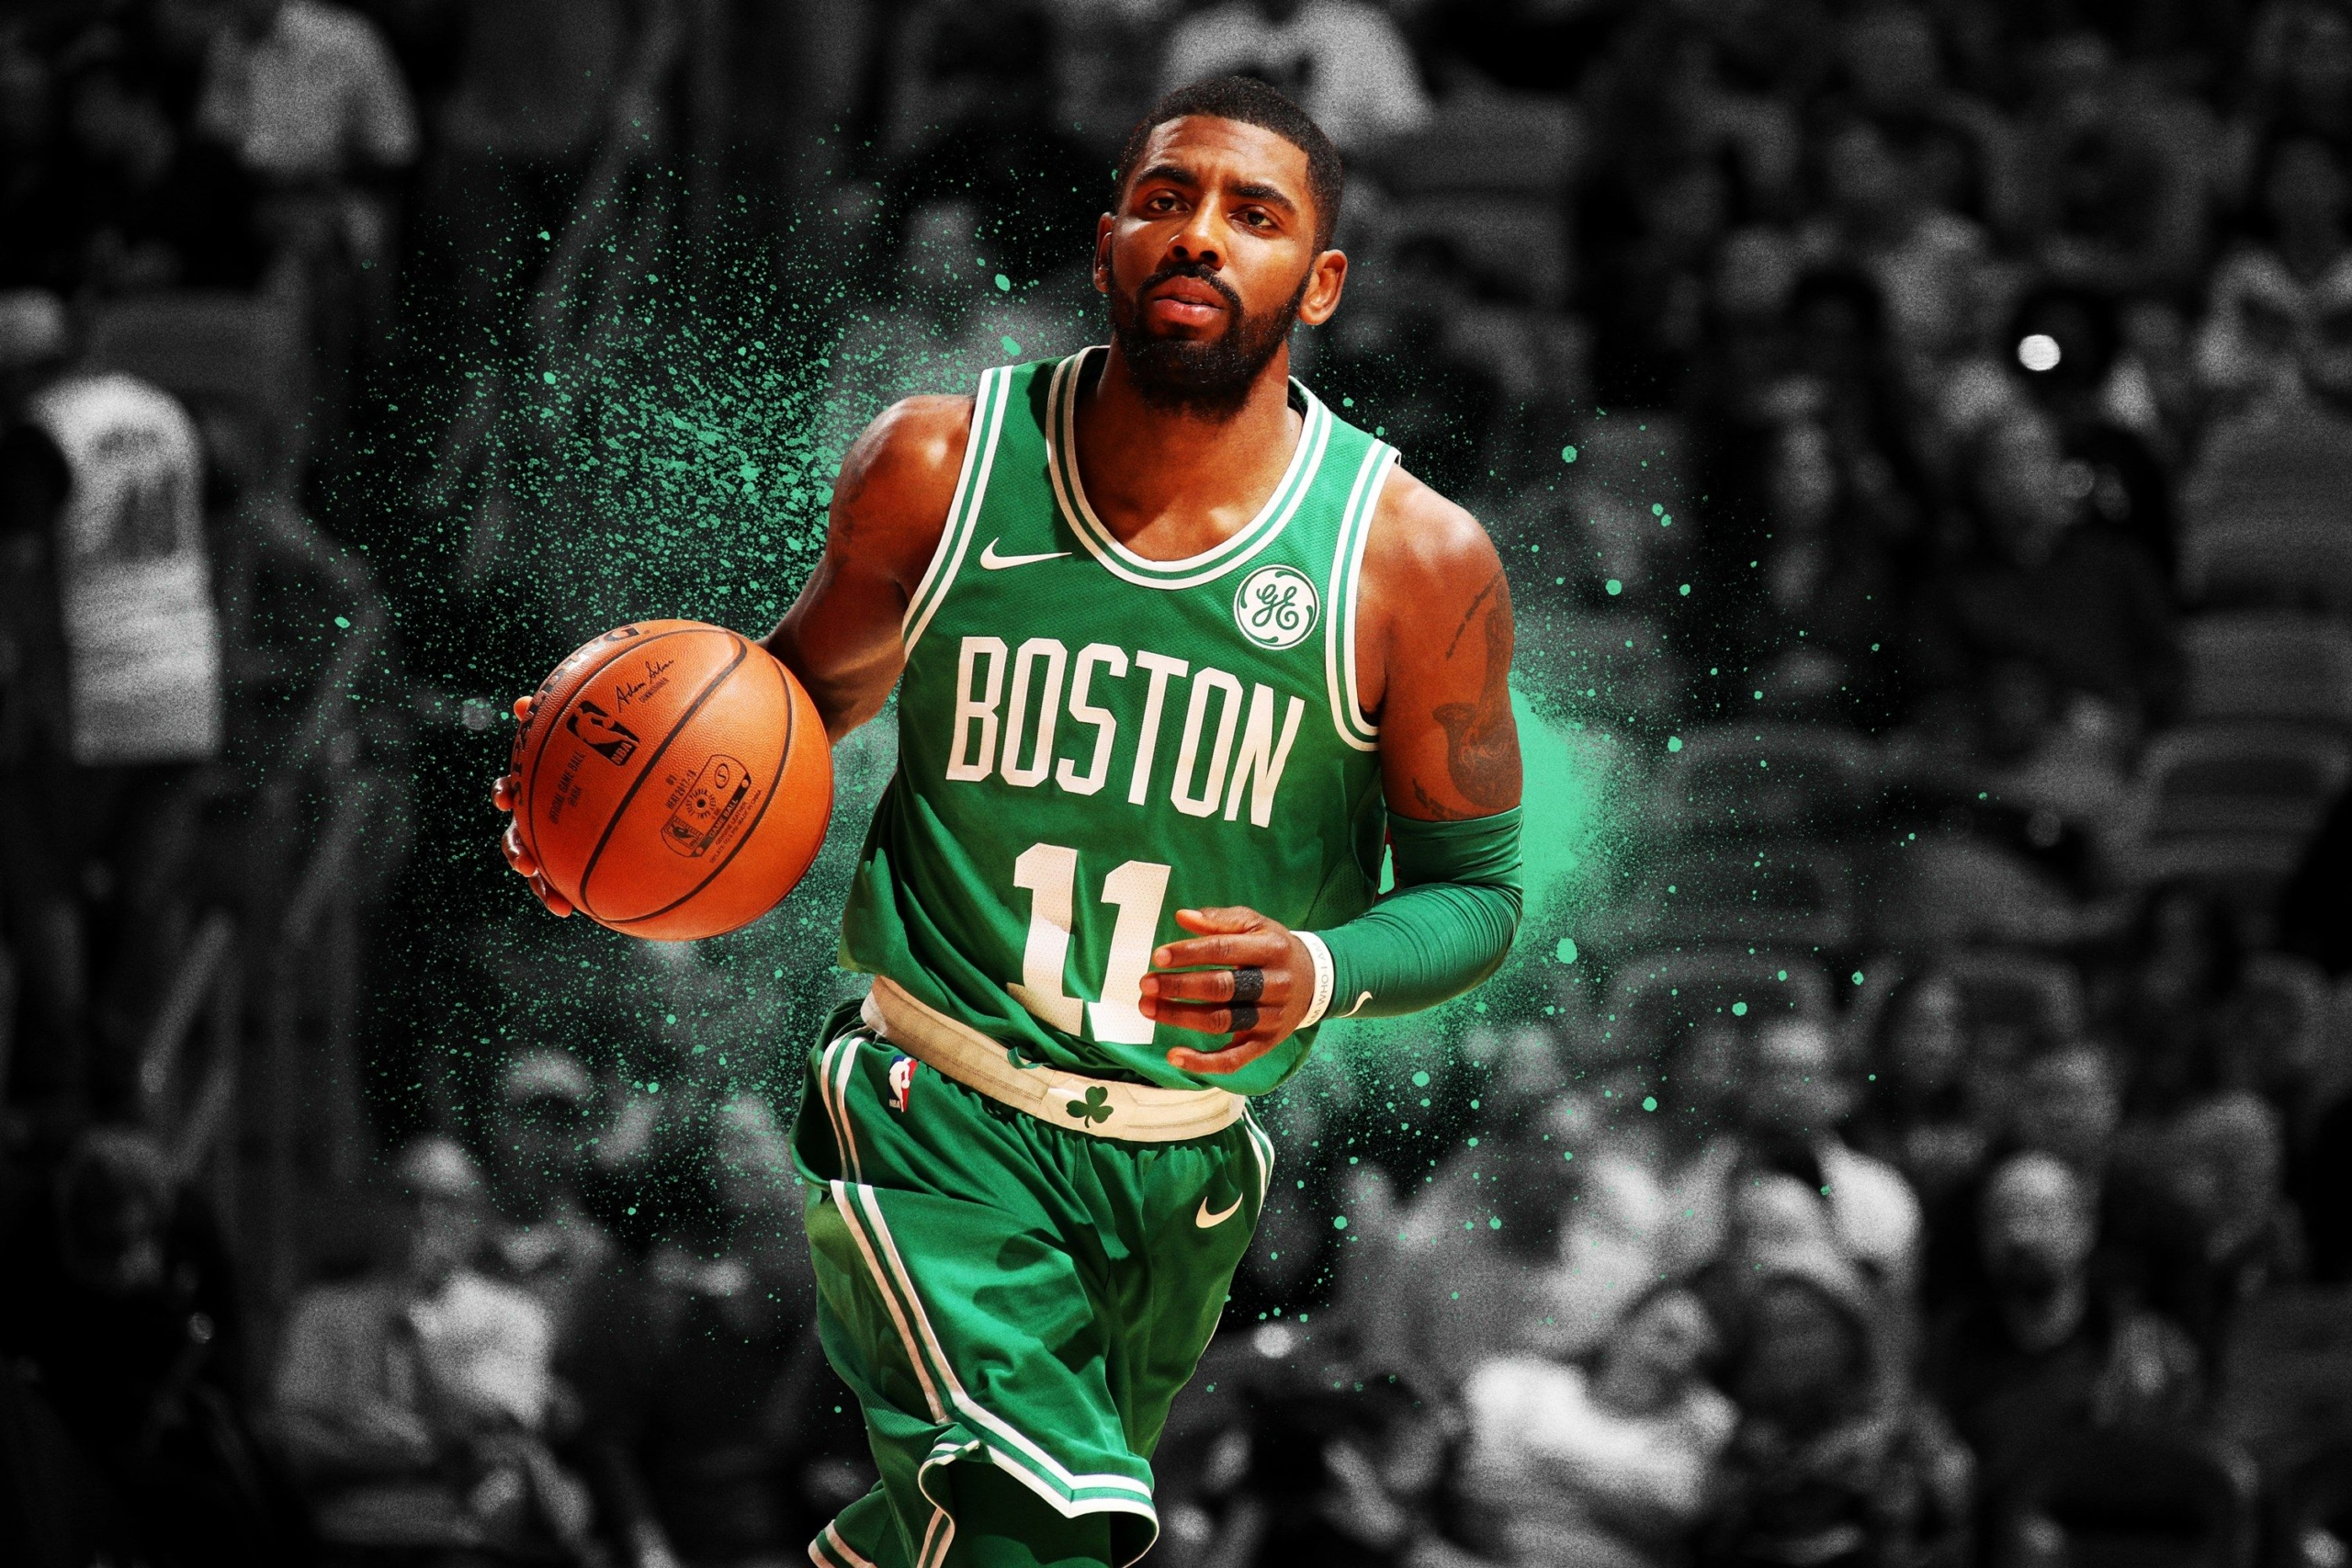 Kyrie Irving Background and The Wallpaper Design